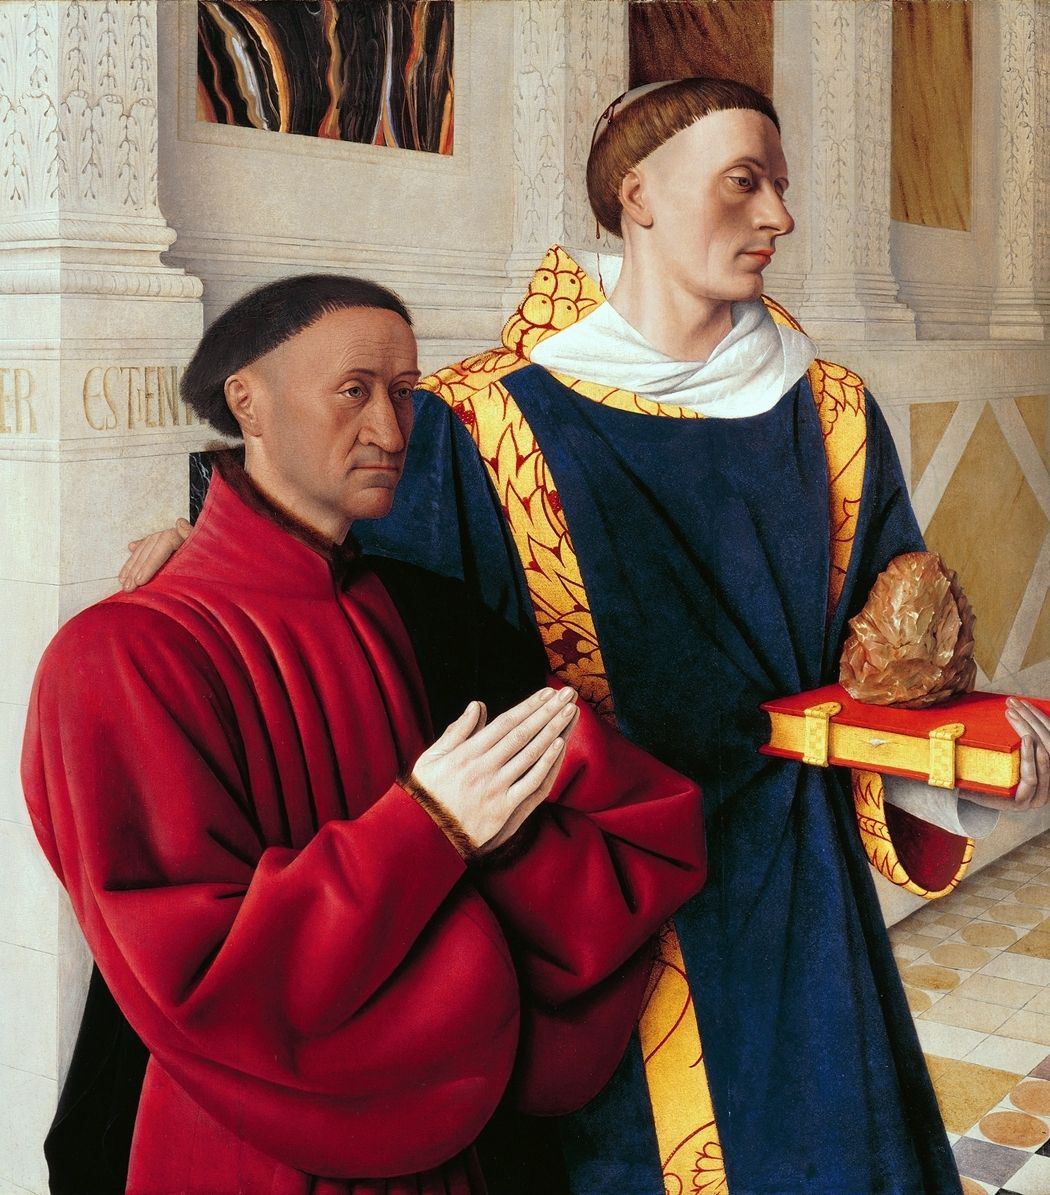 Jean Fouquet. Etienne Chevalier and St. Stefan. Left wing of a diptych Melensky